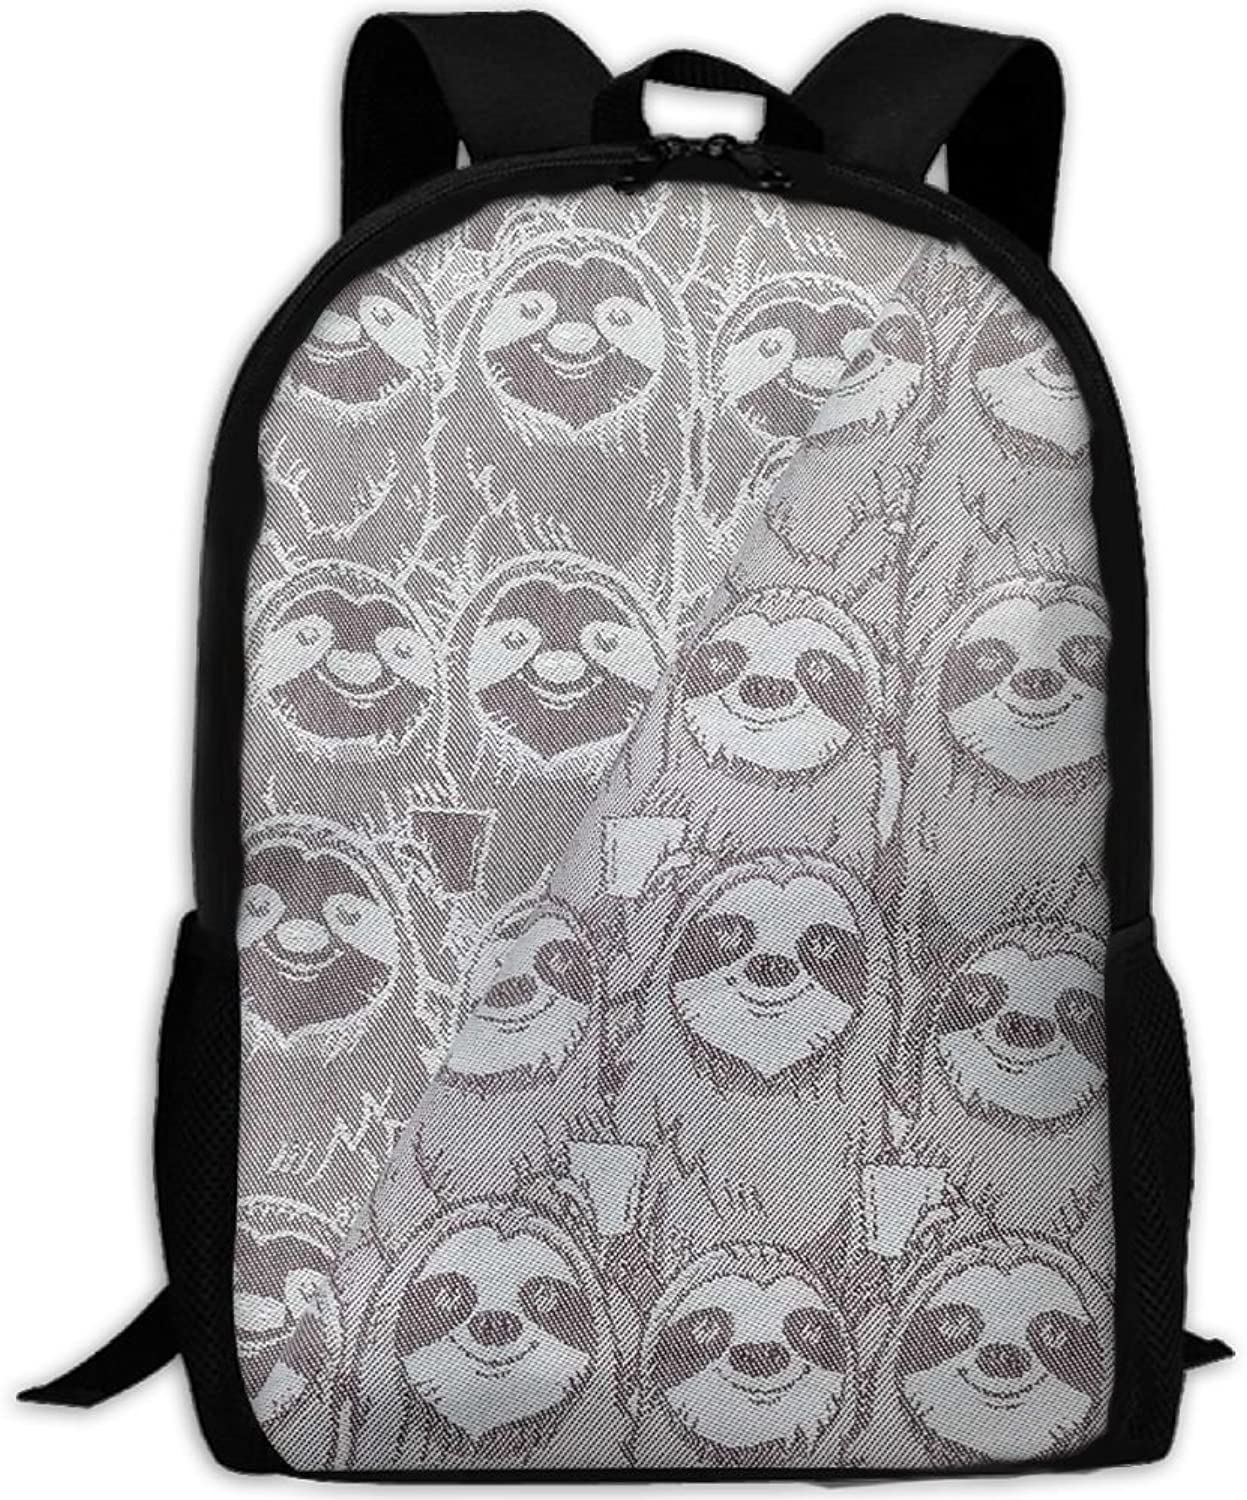 Sloth Meme.jpg 3D Print Backpack College School Laptop Bag Daypack Travel Shoulder Bag for Unisex B07PY6QJKG  Qualität